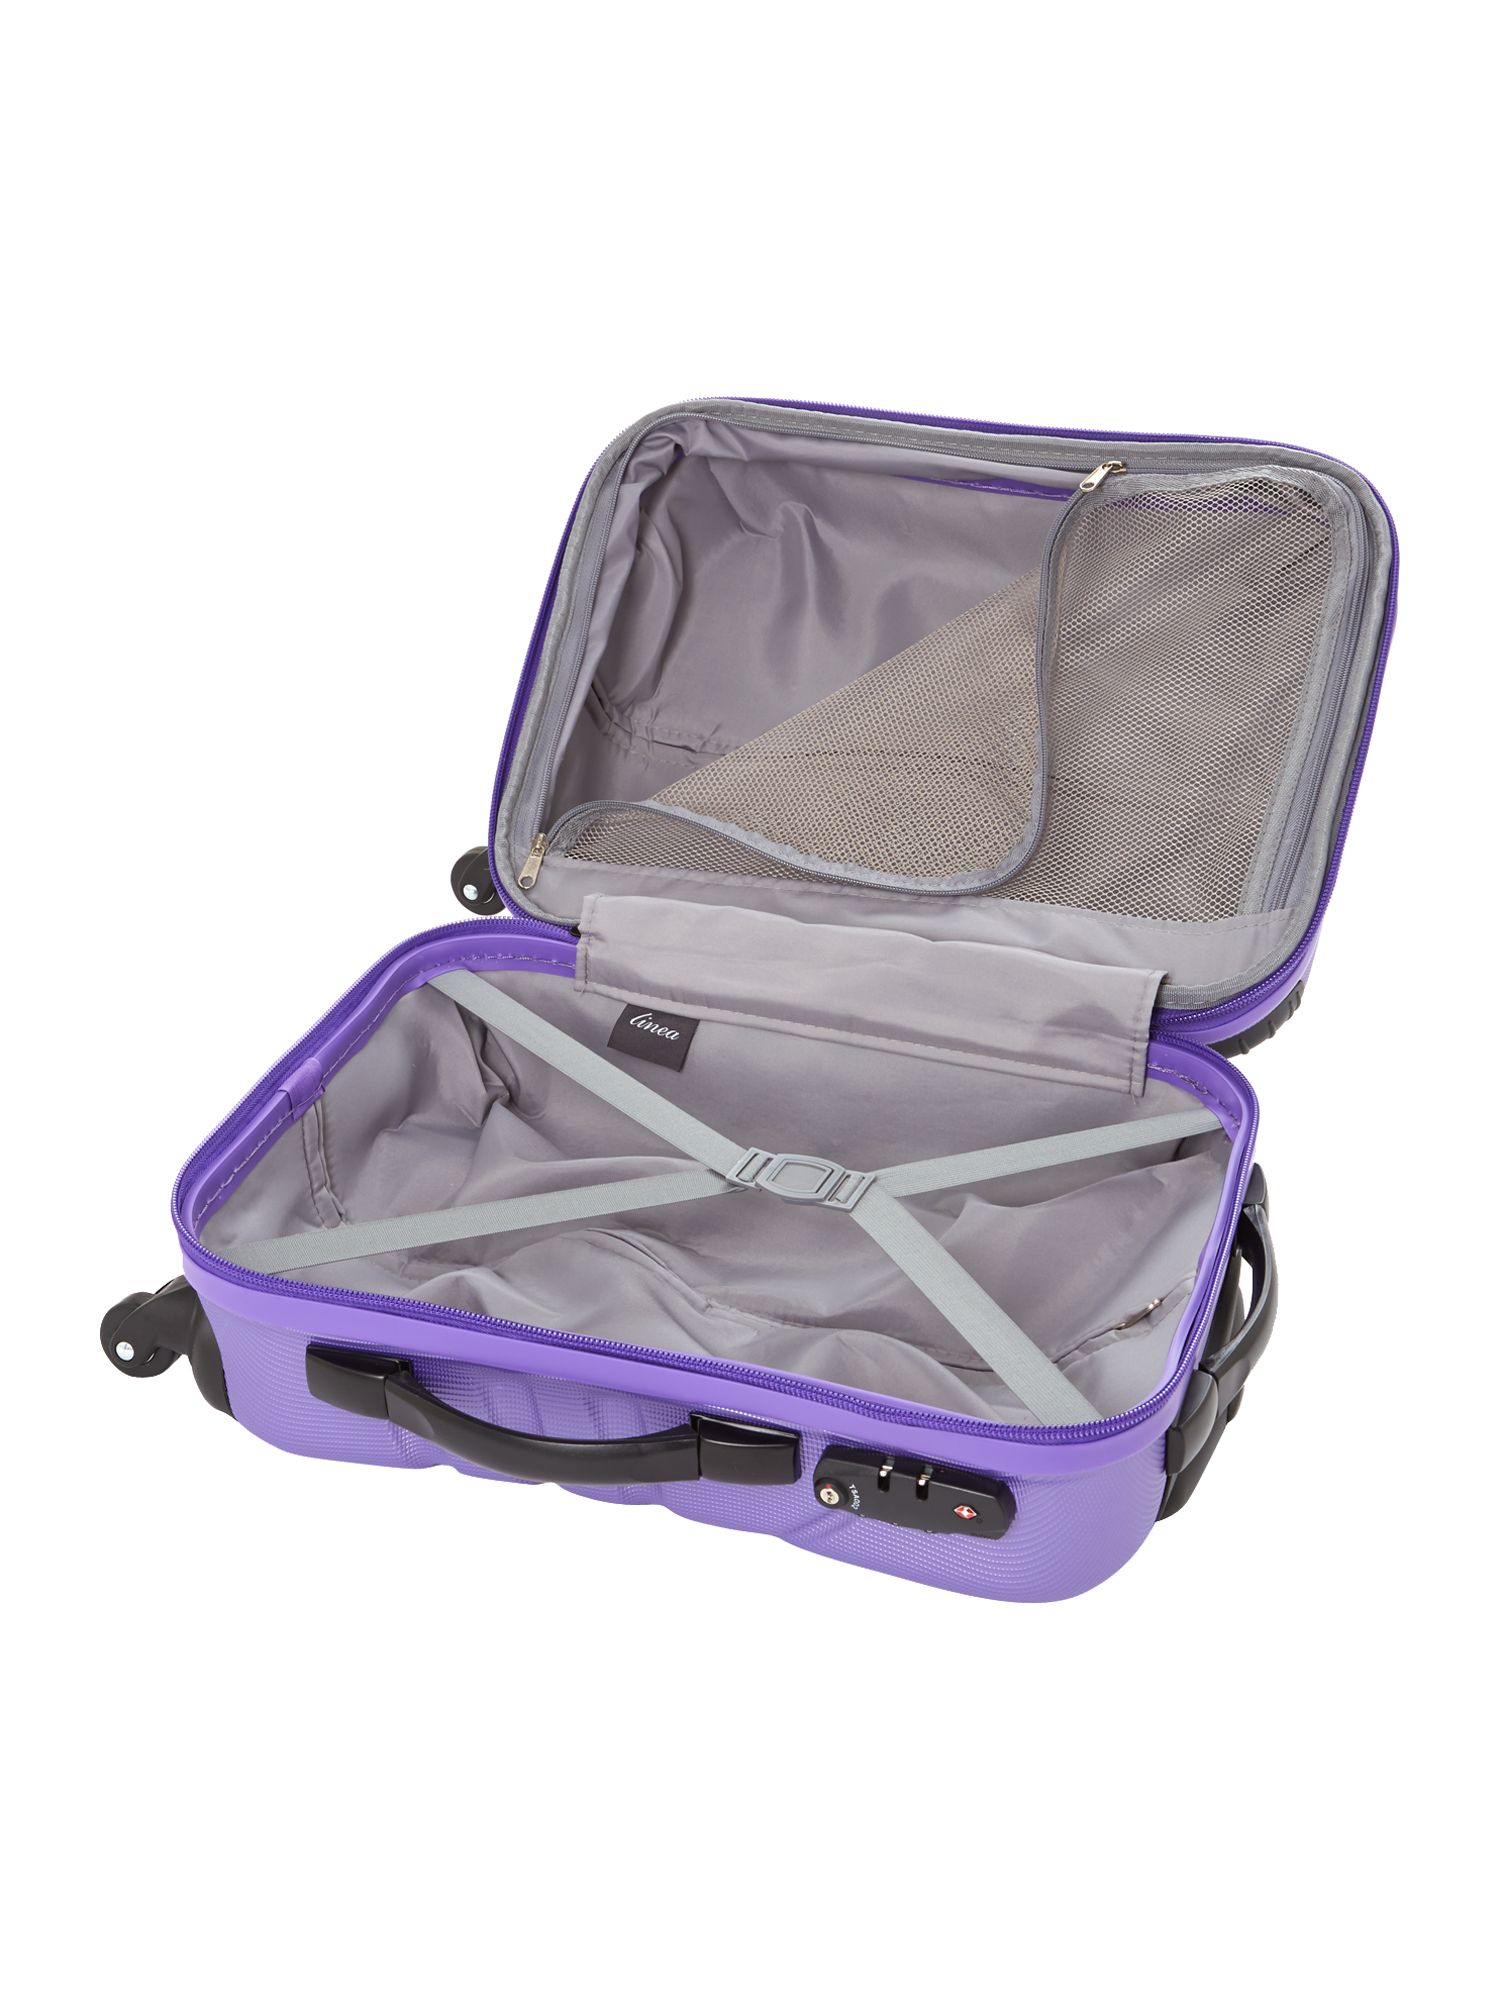 Shell purple 2 wheel hard cabin suitcase